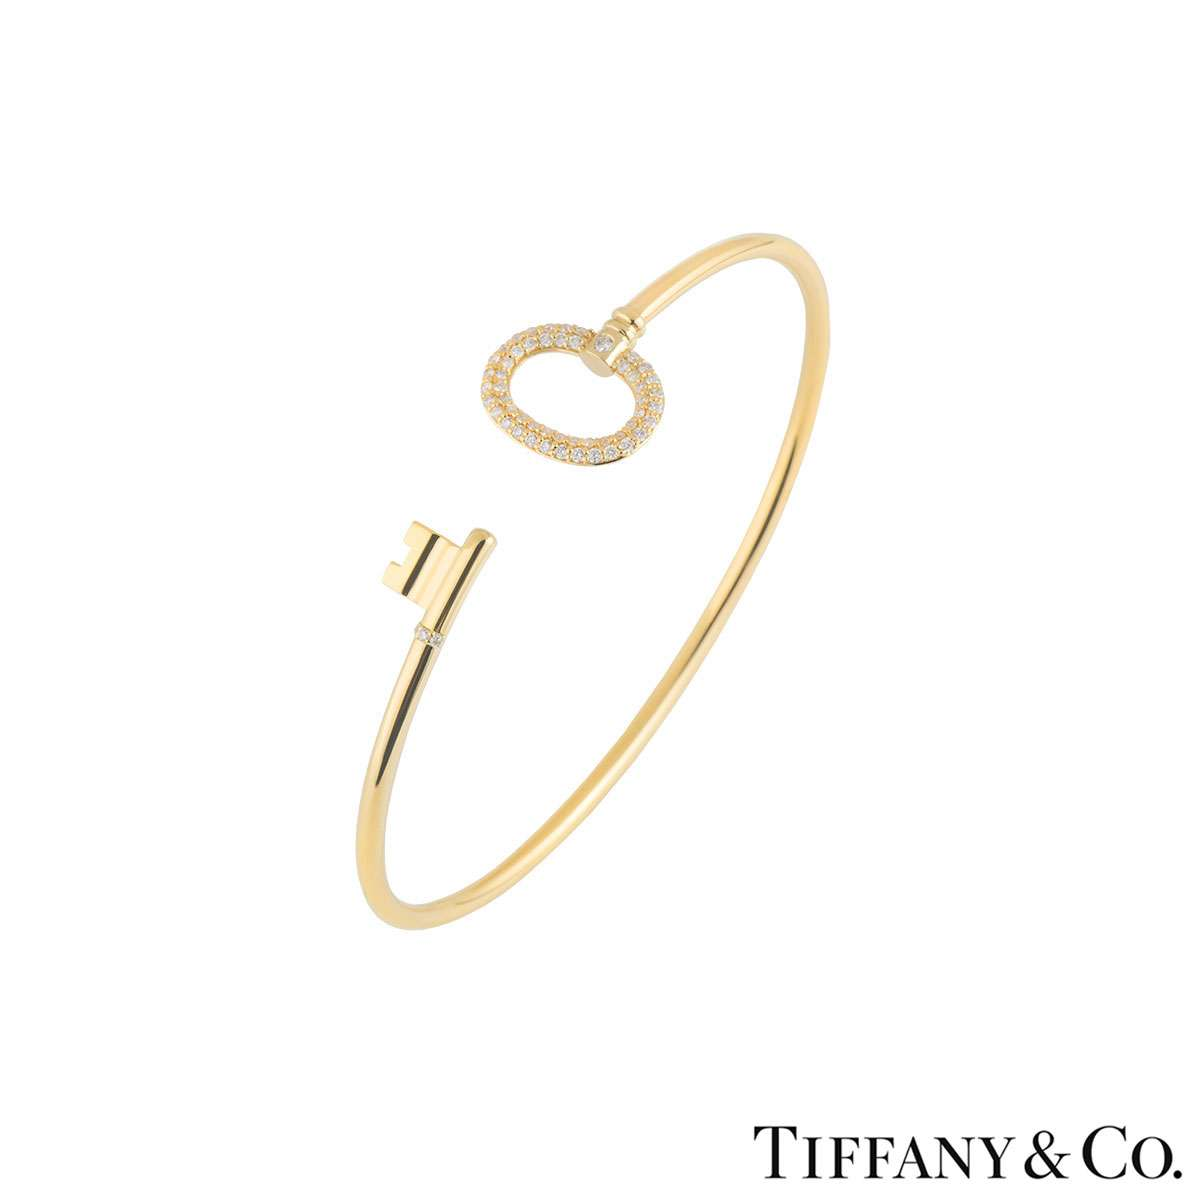 Tiffany & Co. Keys Yellow Gold Wire Bracelet